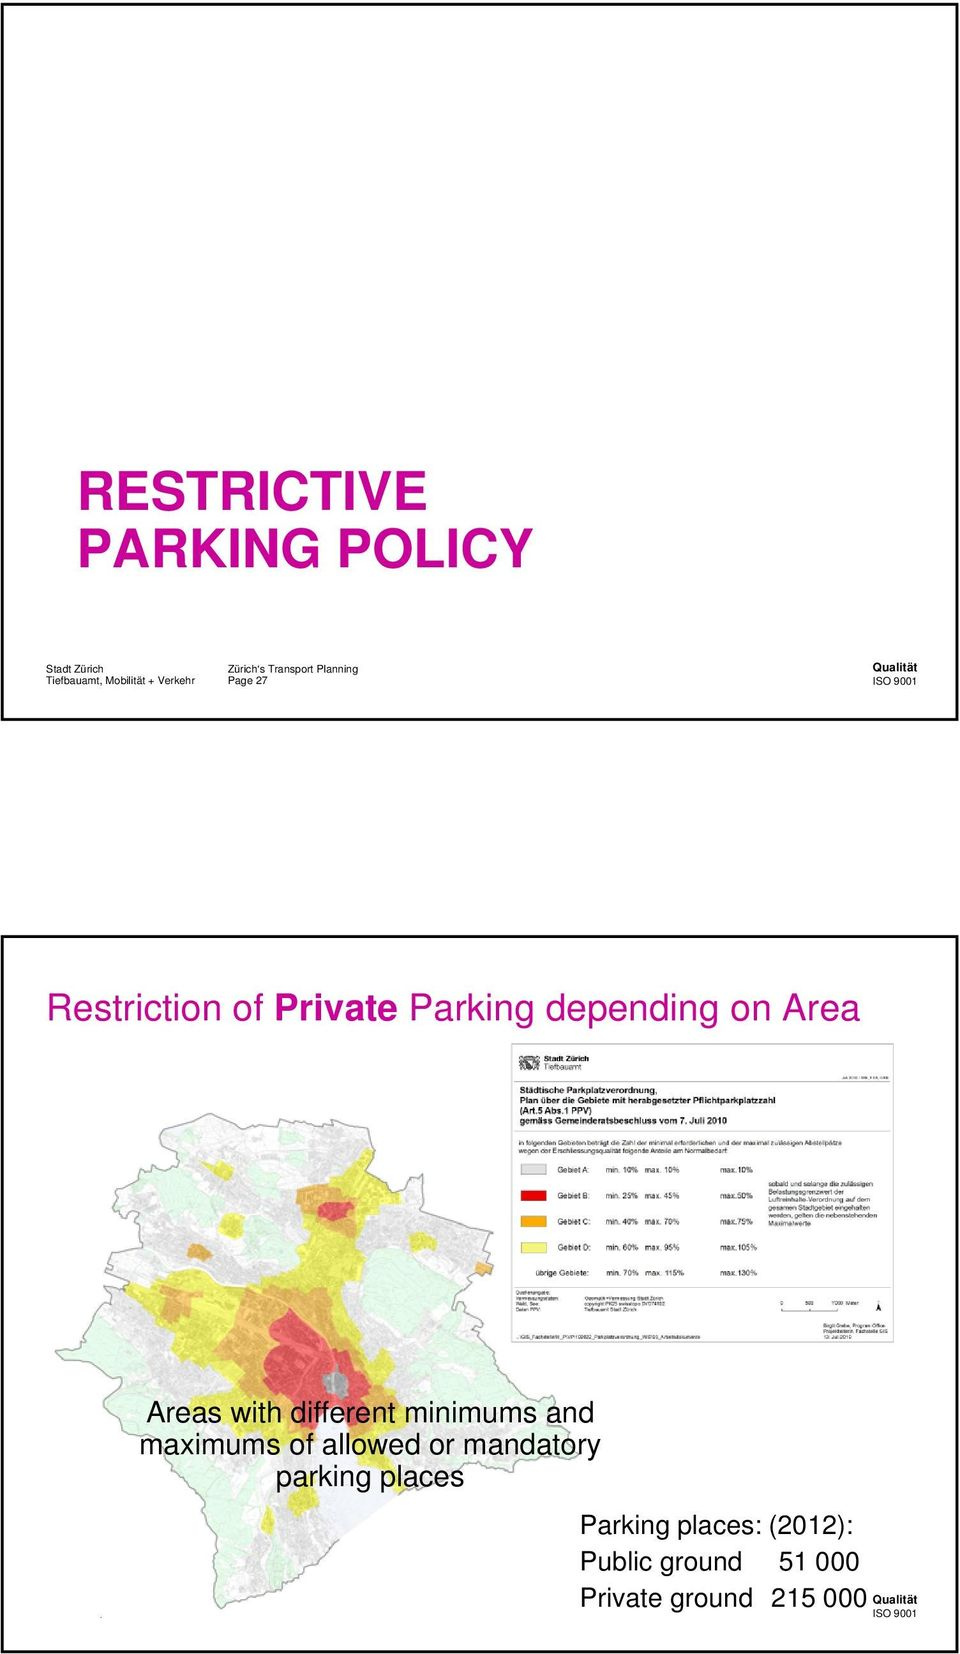 maximums of allowed or mandatory parking places Page 28